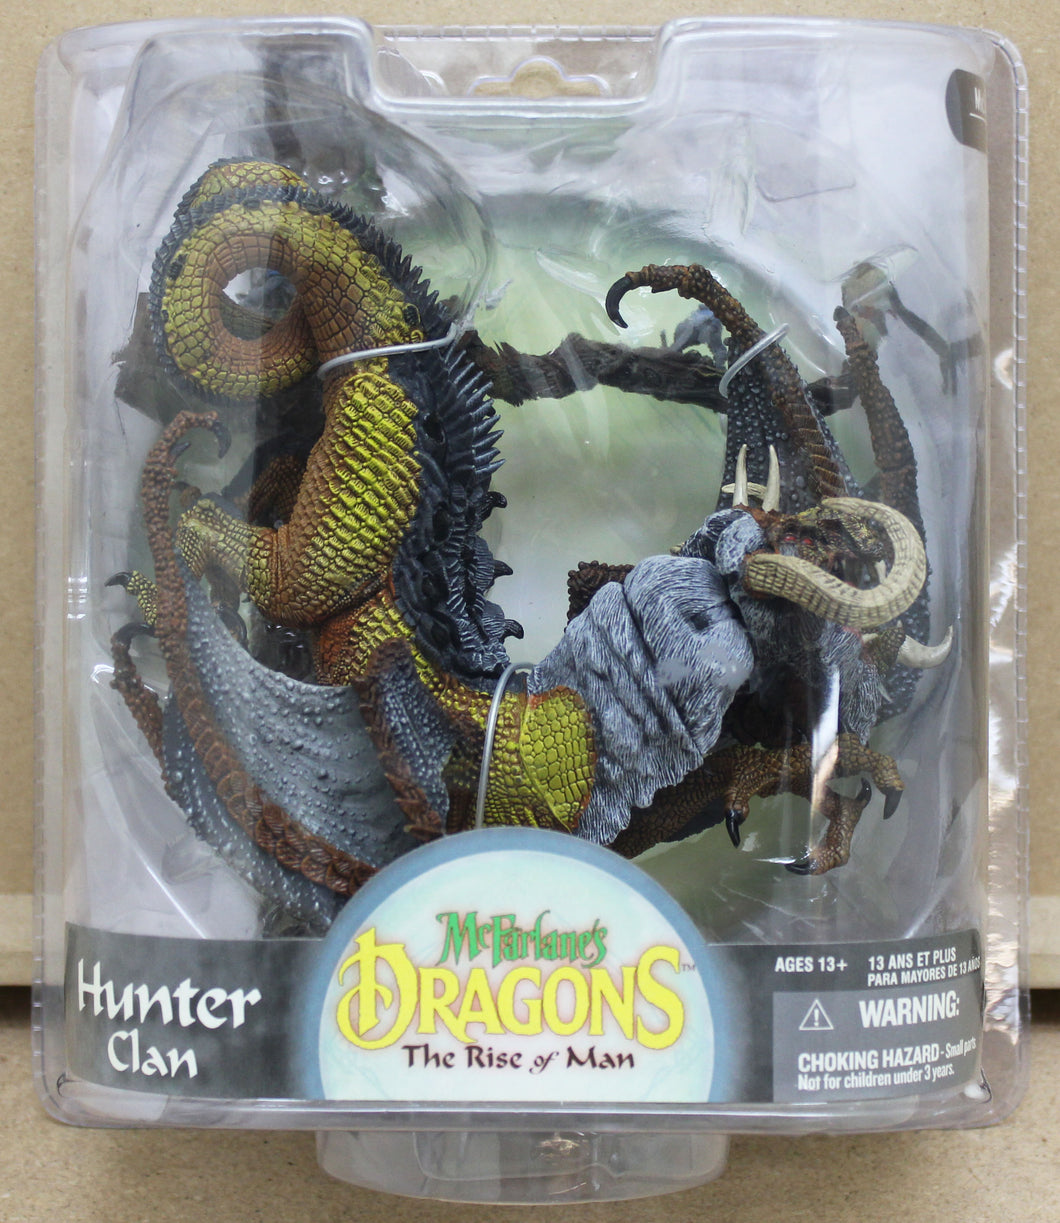 McFarlane's Dragons - Hunter Clan Dragon 2